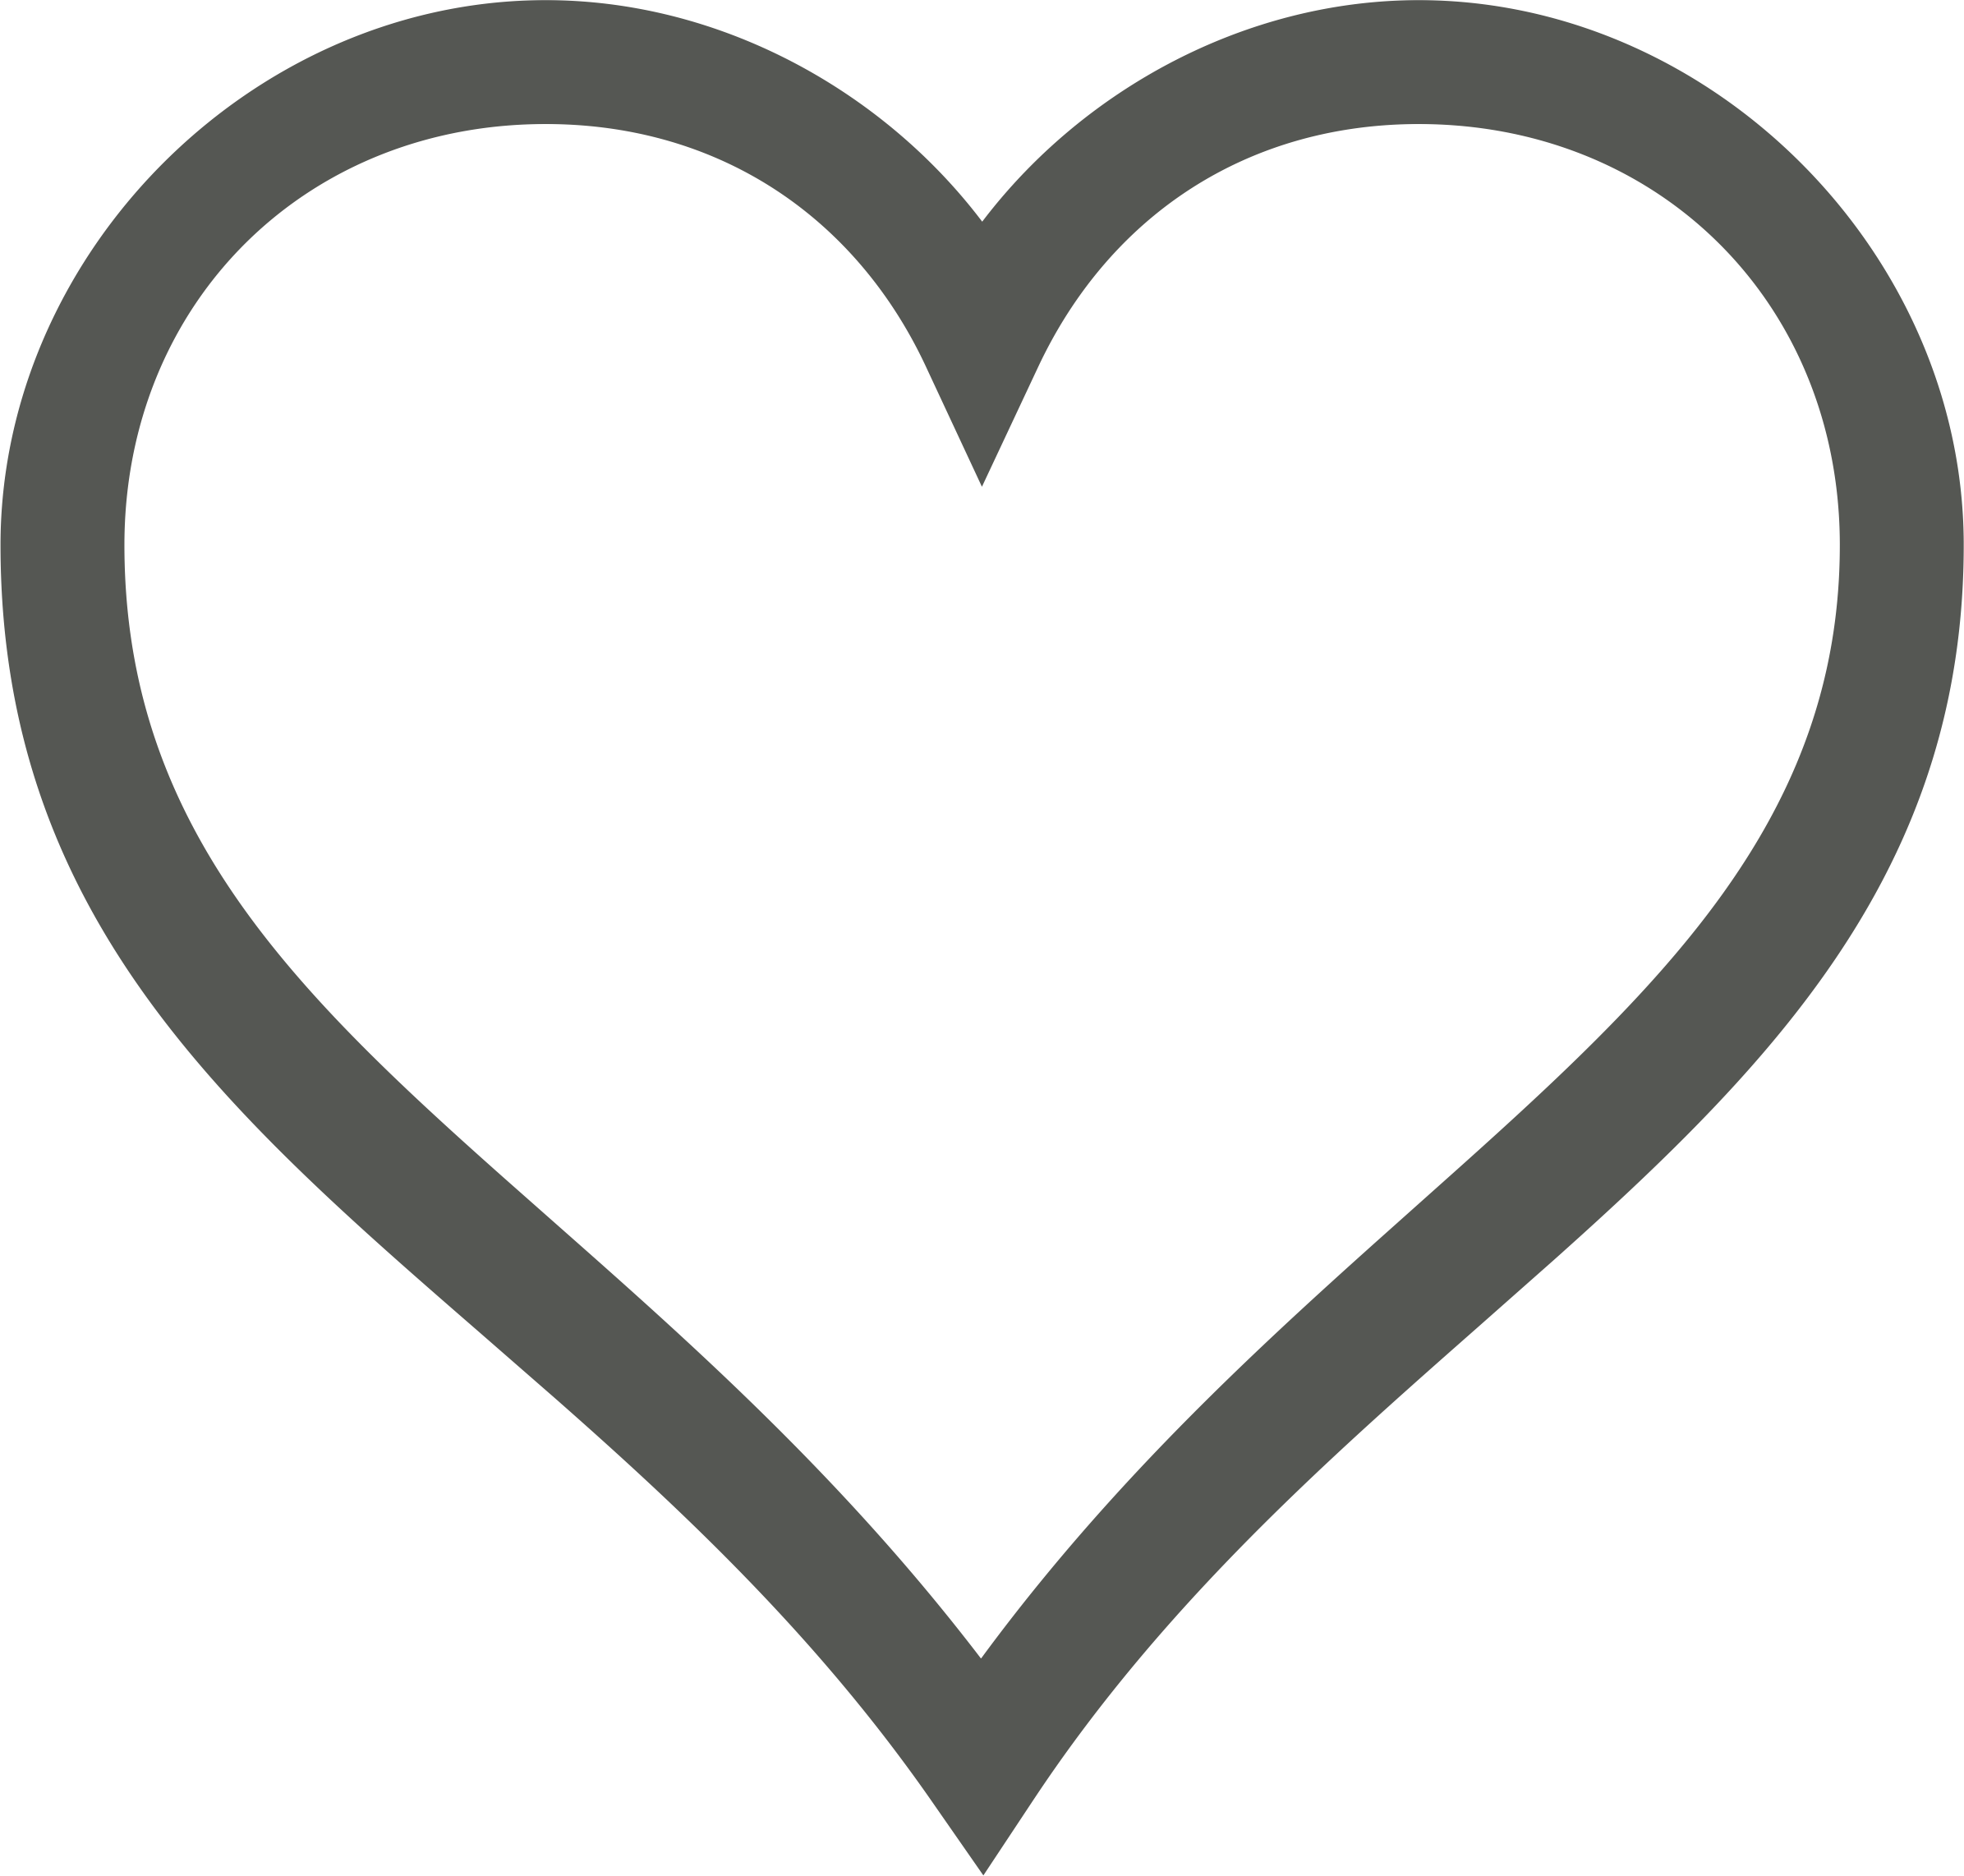 Icon deselected big image. Clipart heart sign